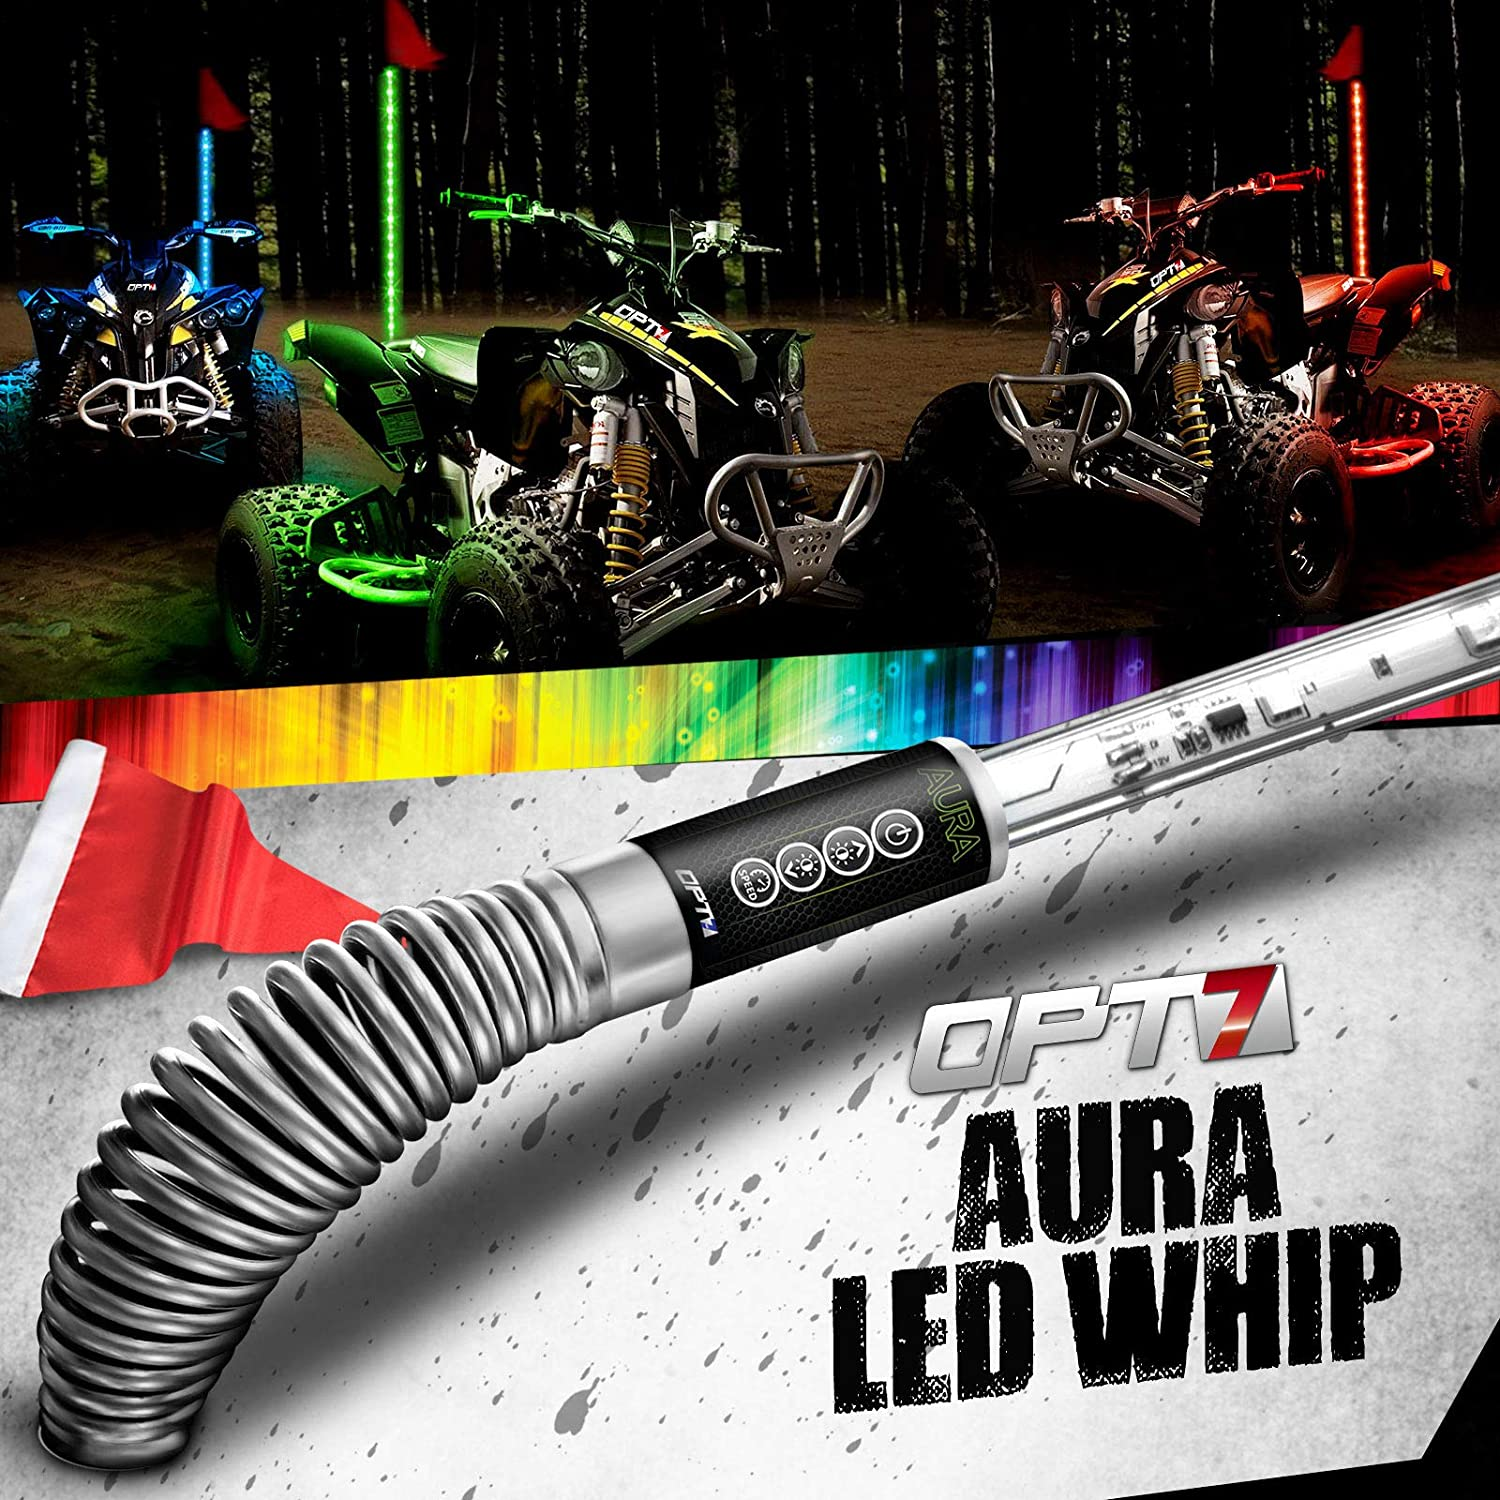 Remote 64+ Multi-Color Light Patterns OPT7 Aura 6ft LED Whip Pair w//Quick Release Shock Spring Shatterproof Waterproof Build Flag Accessories for All-Terrain Off Road ATV Polaris RZR 4 Wheeler